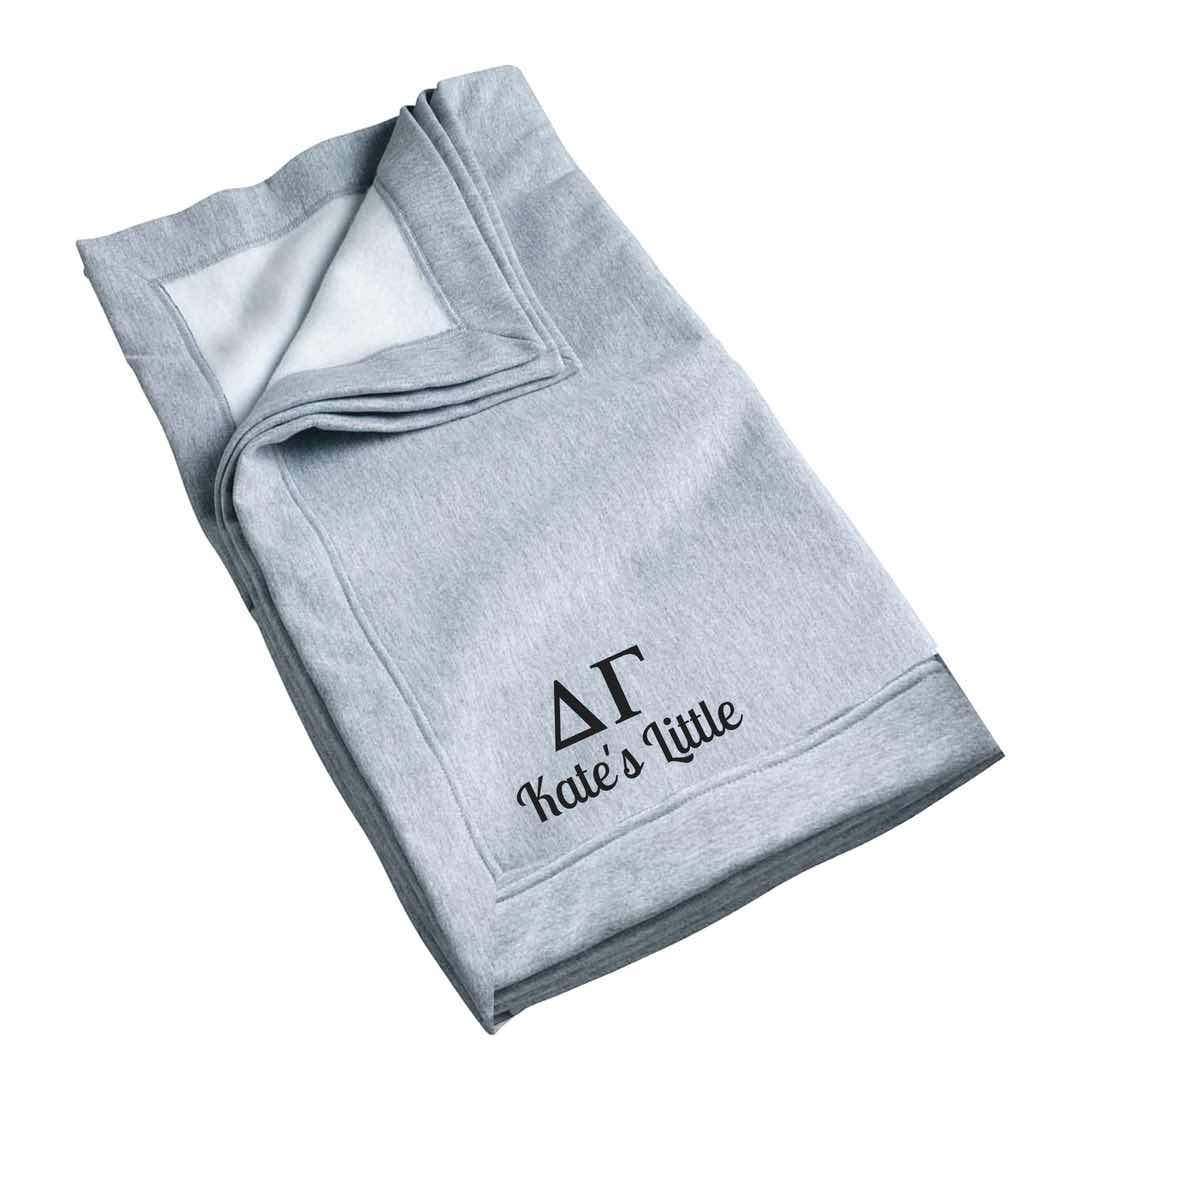 Delta Gamma Little Blanket, Recommended One Size Fits All Personalized Big Little Gift